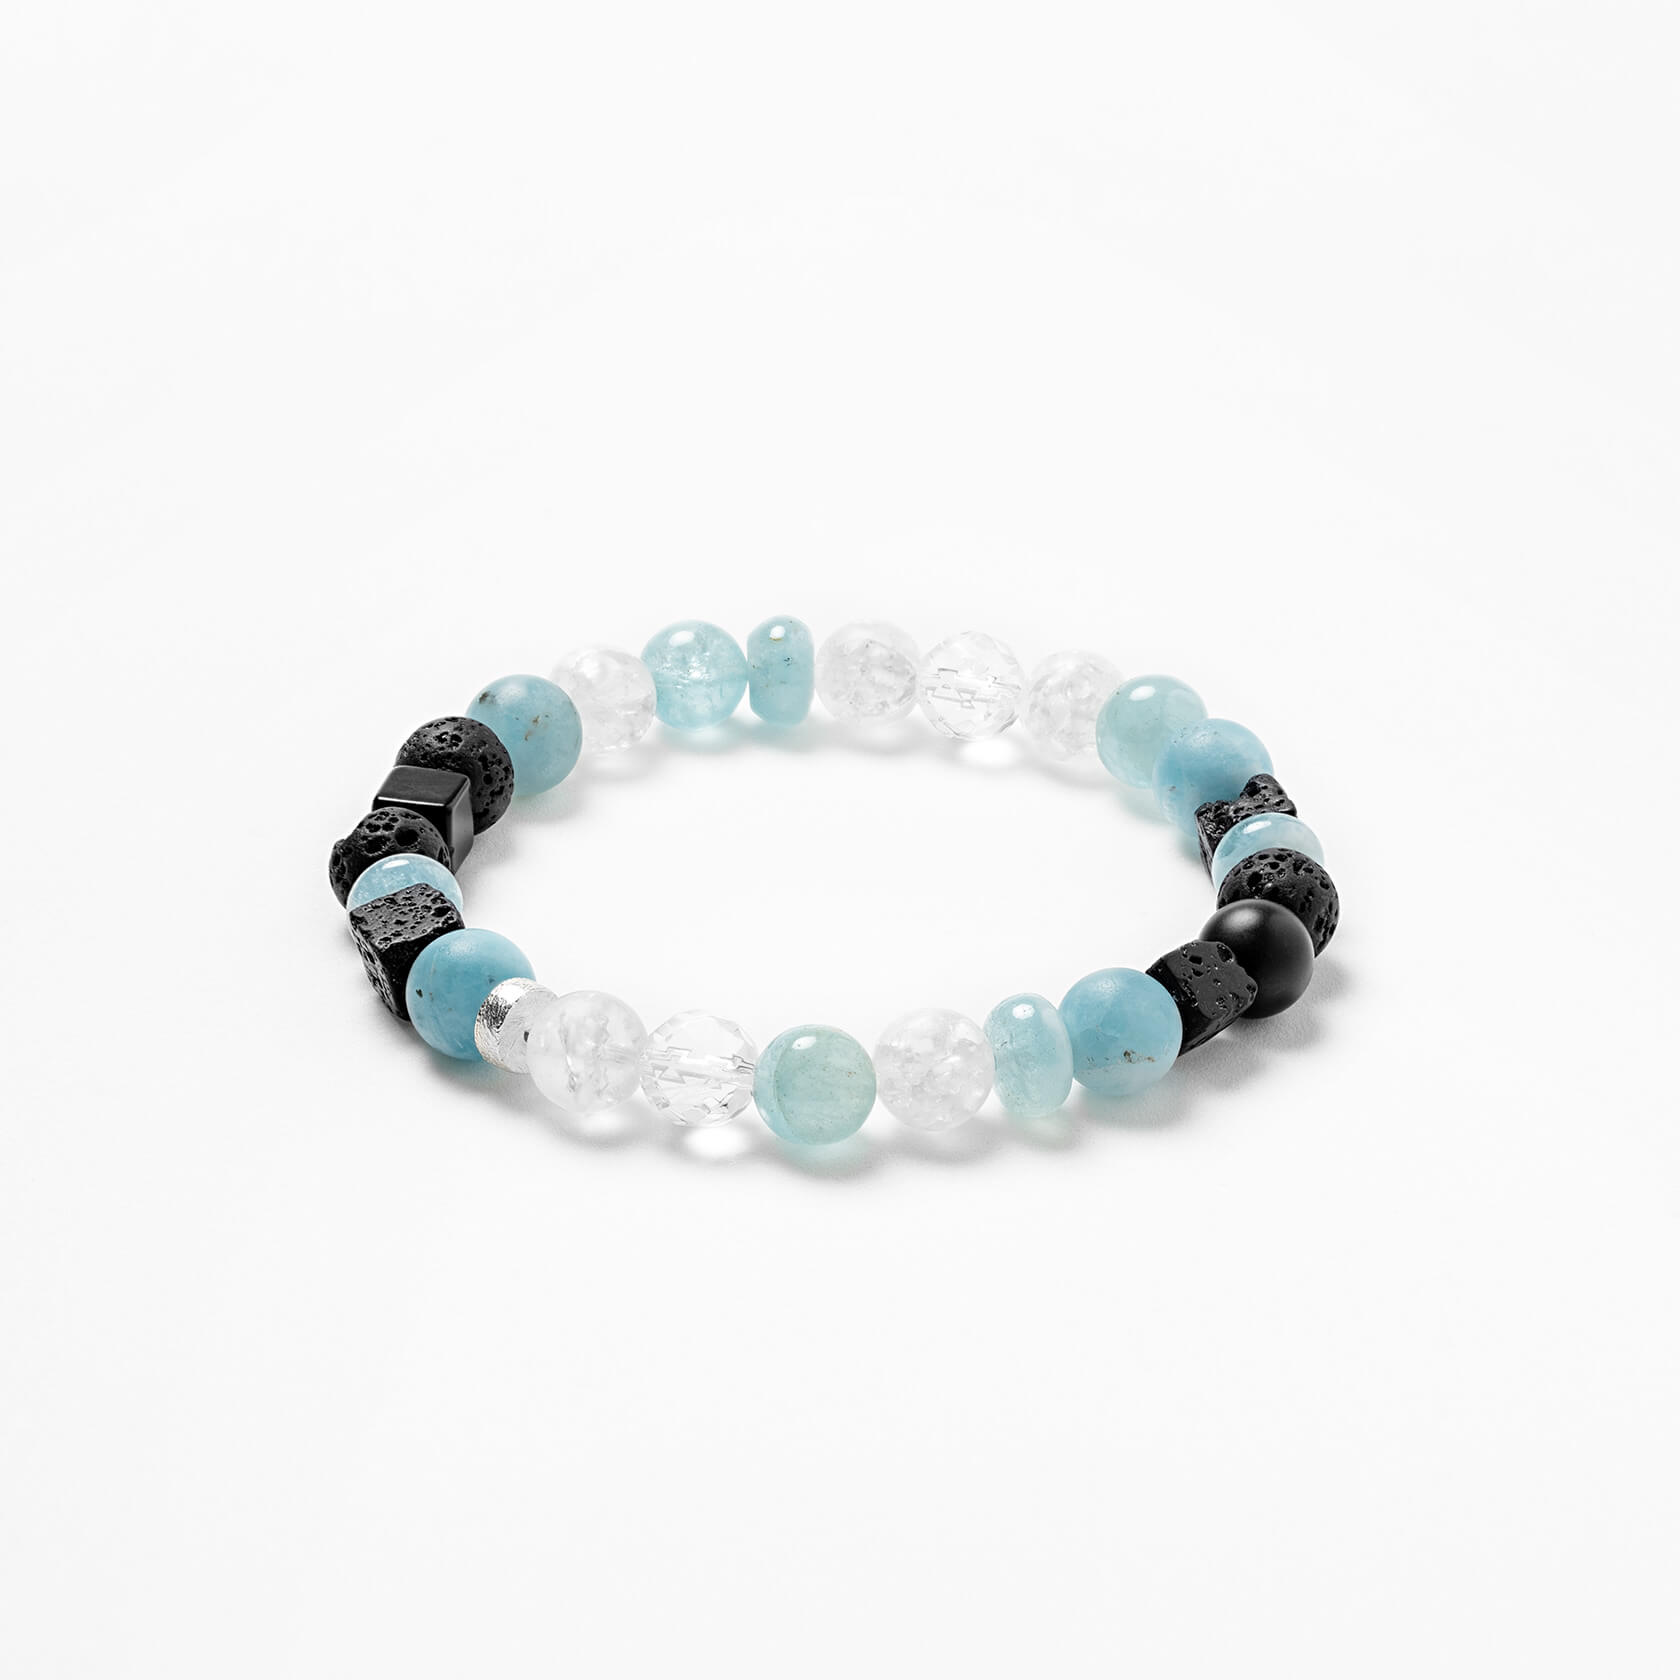 Unisex bracelet made of aquamarine and quartz marybola